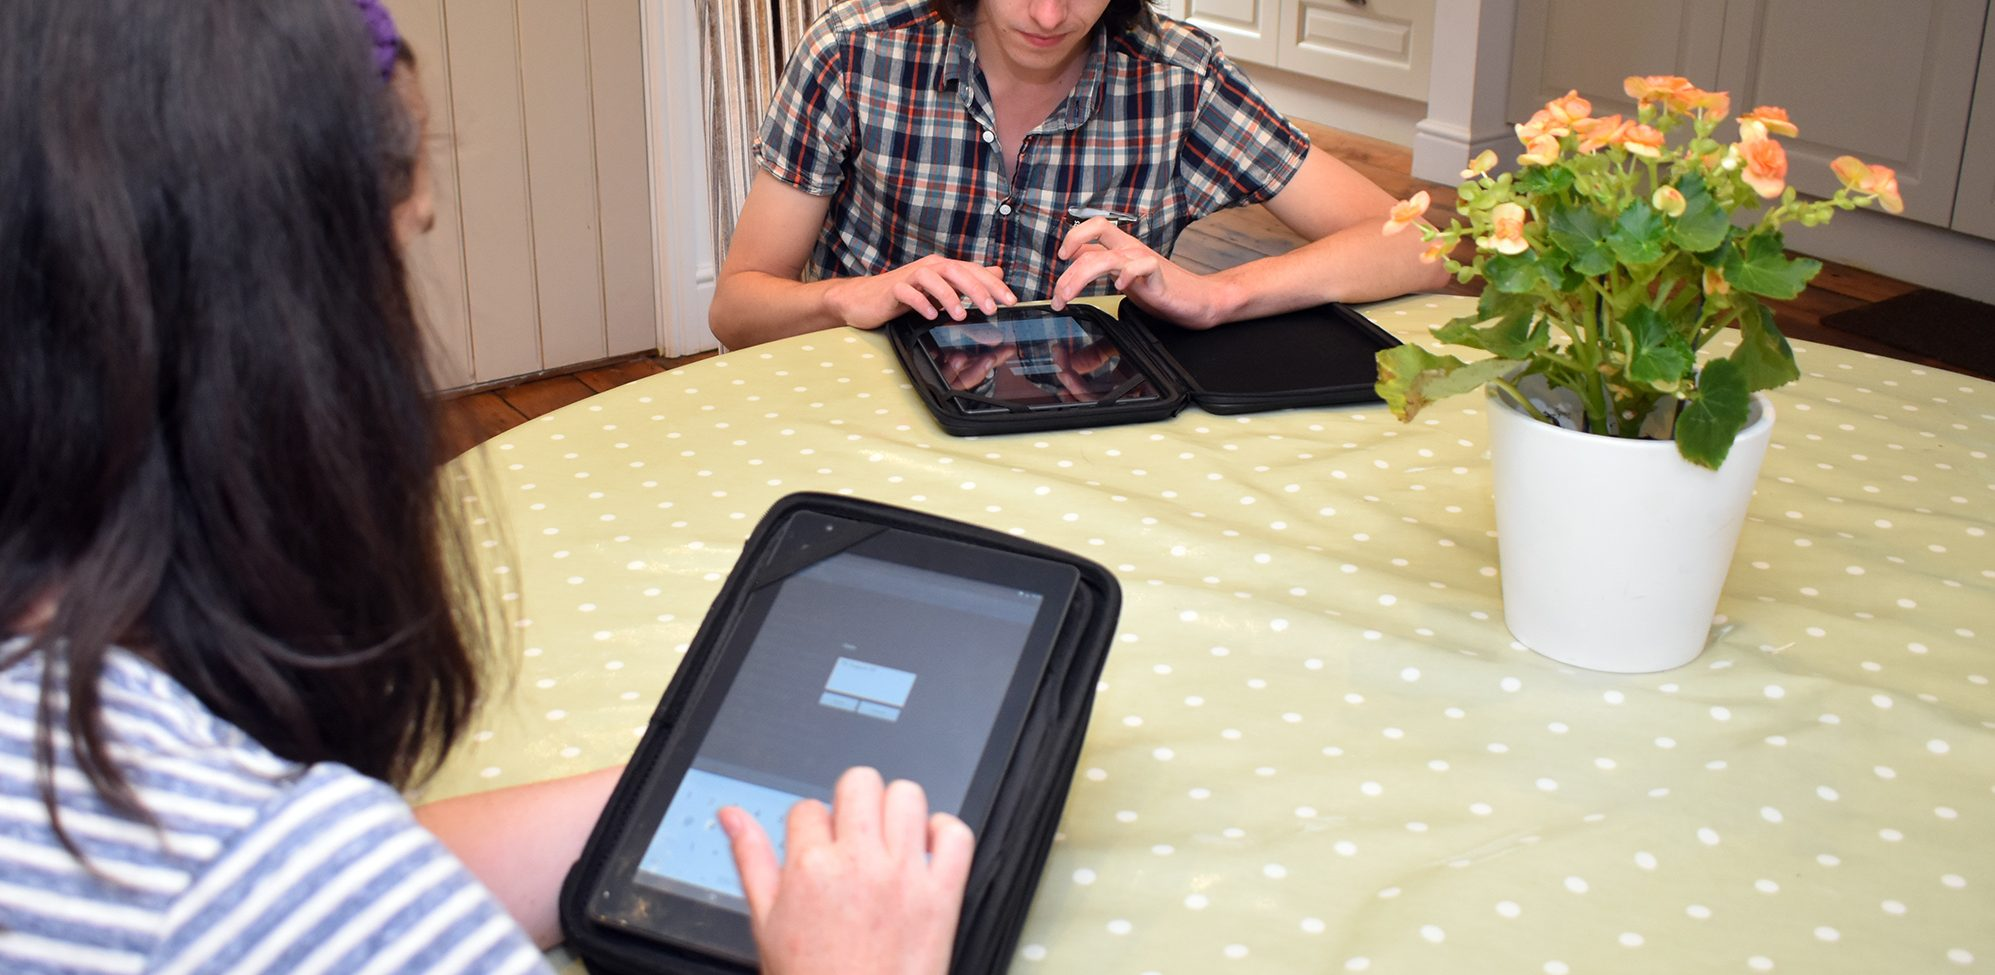 supported living carers using easylog software on tablet PCs